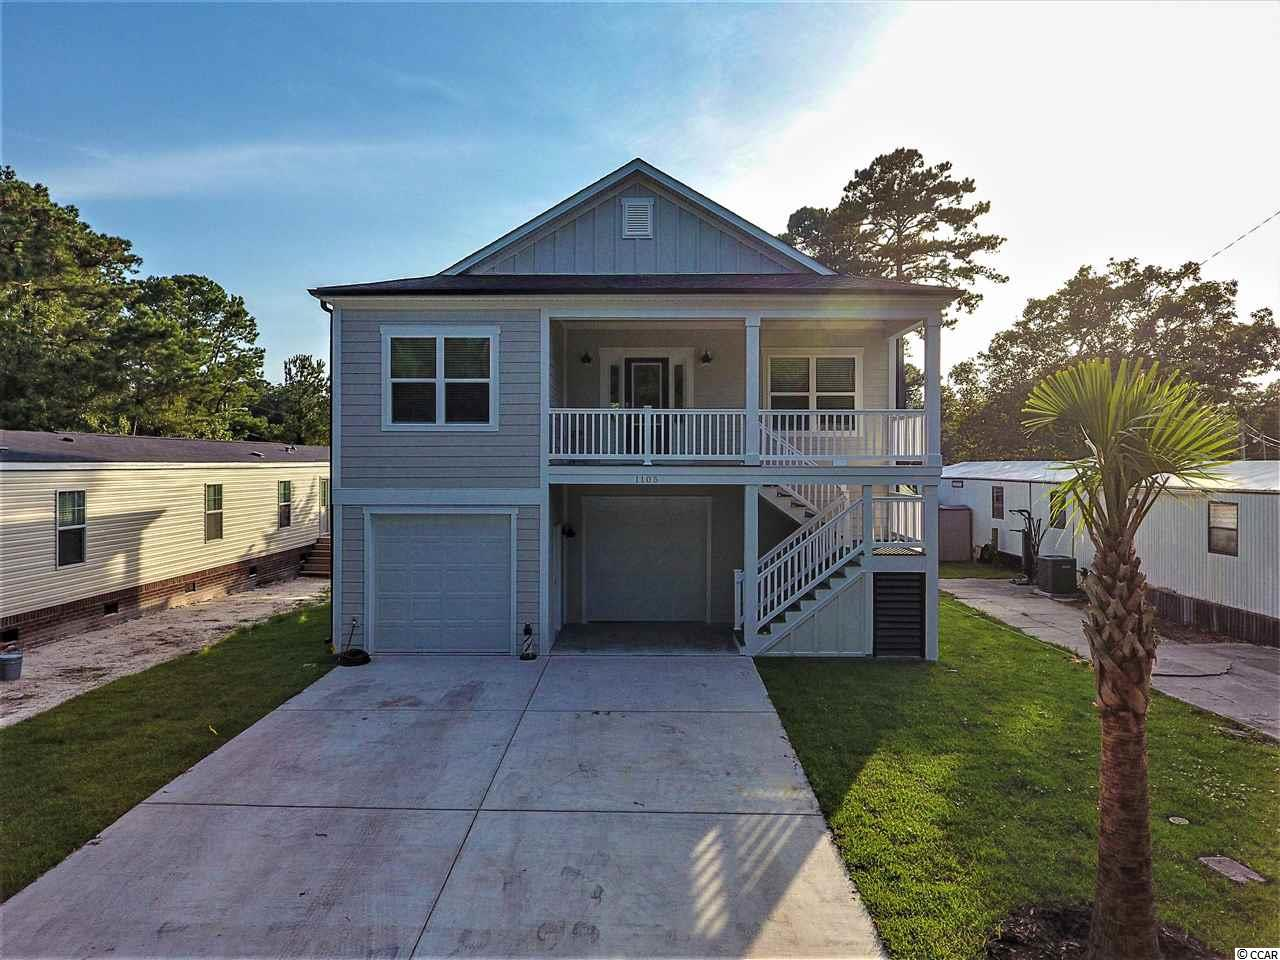 This 3br 2 bath raised beach house can be doubled in size by closing in under the house for living and storage or garage. The Grove has no HOA and is just a little over a mile to the warm sunny Cherry Grove Beach. Hop on your golf cart and ride to the beach, shopping, restaurants and more. It's also just a few blocks away from the ICW. Call today and pick out your colors and flooring. Pictures represented are of a model home.